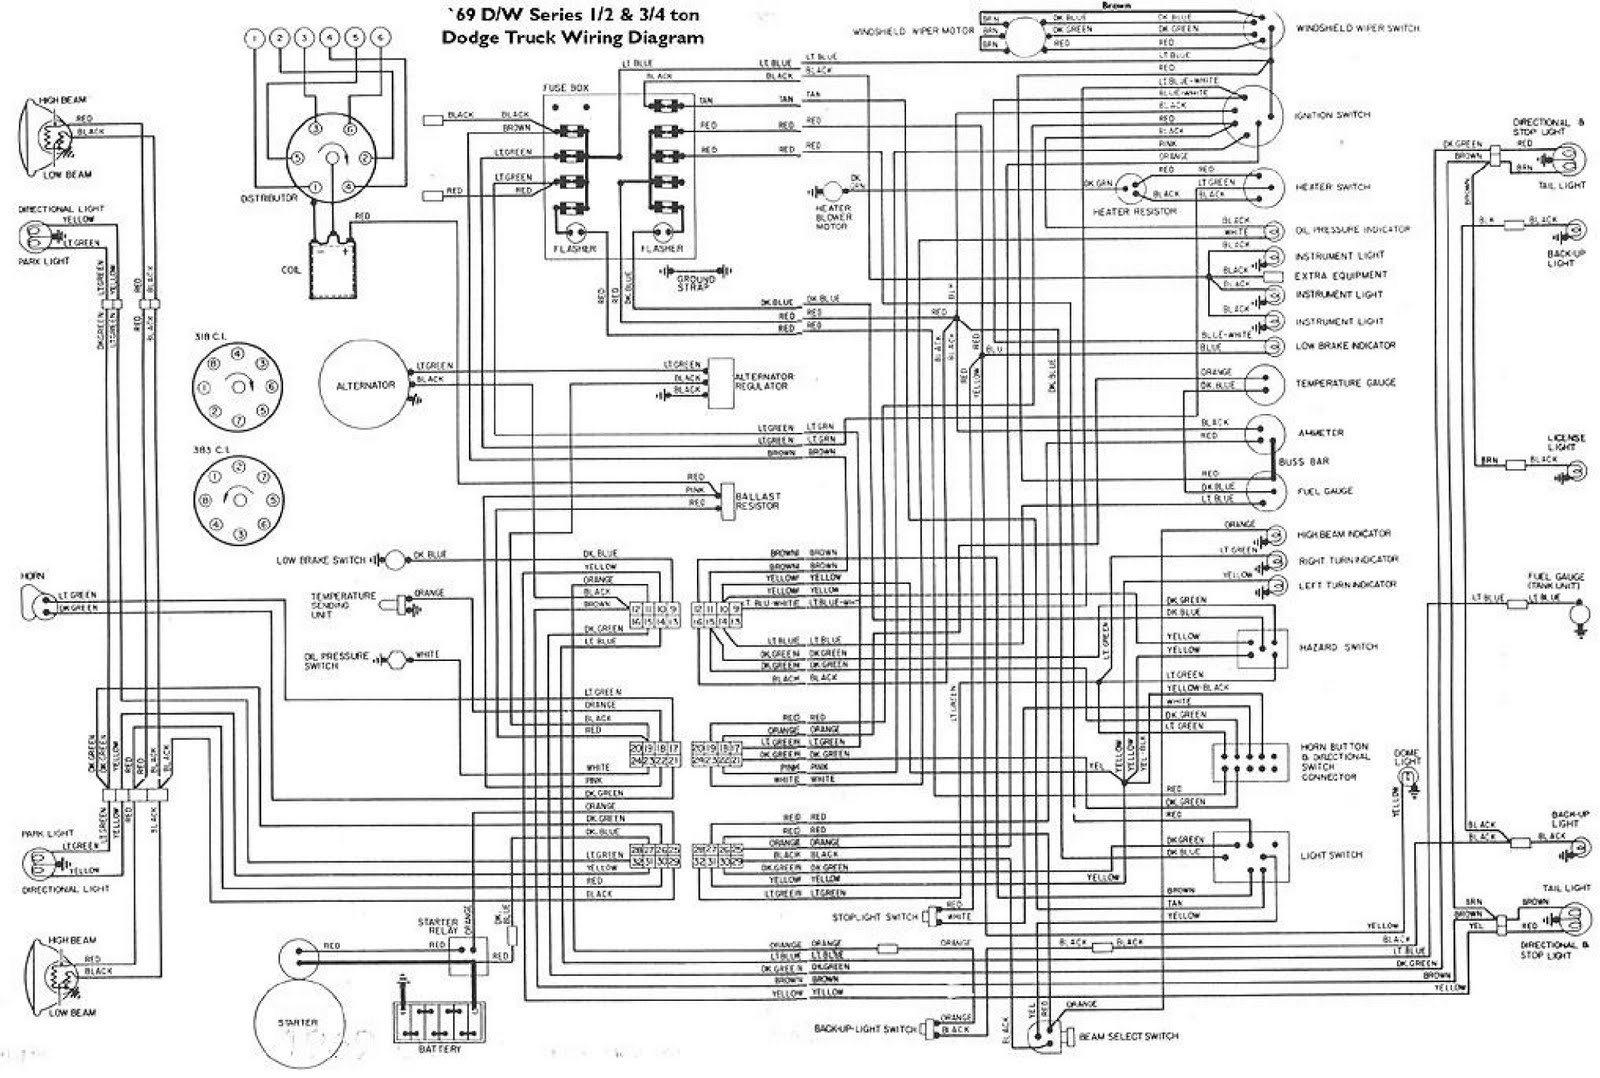 1977 plymouth volare wiring diagram wiring harness engine diag -  ibrahim.23.frisellaedintorni.it  free download wiring diagram and schematics